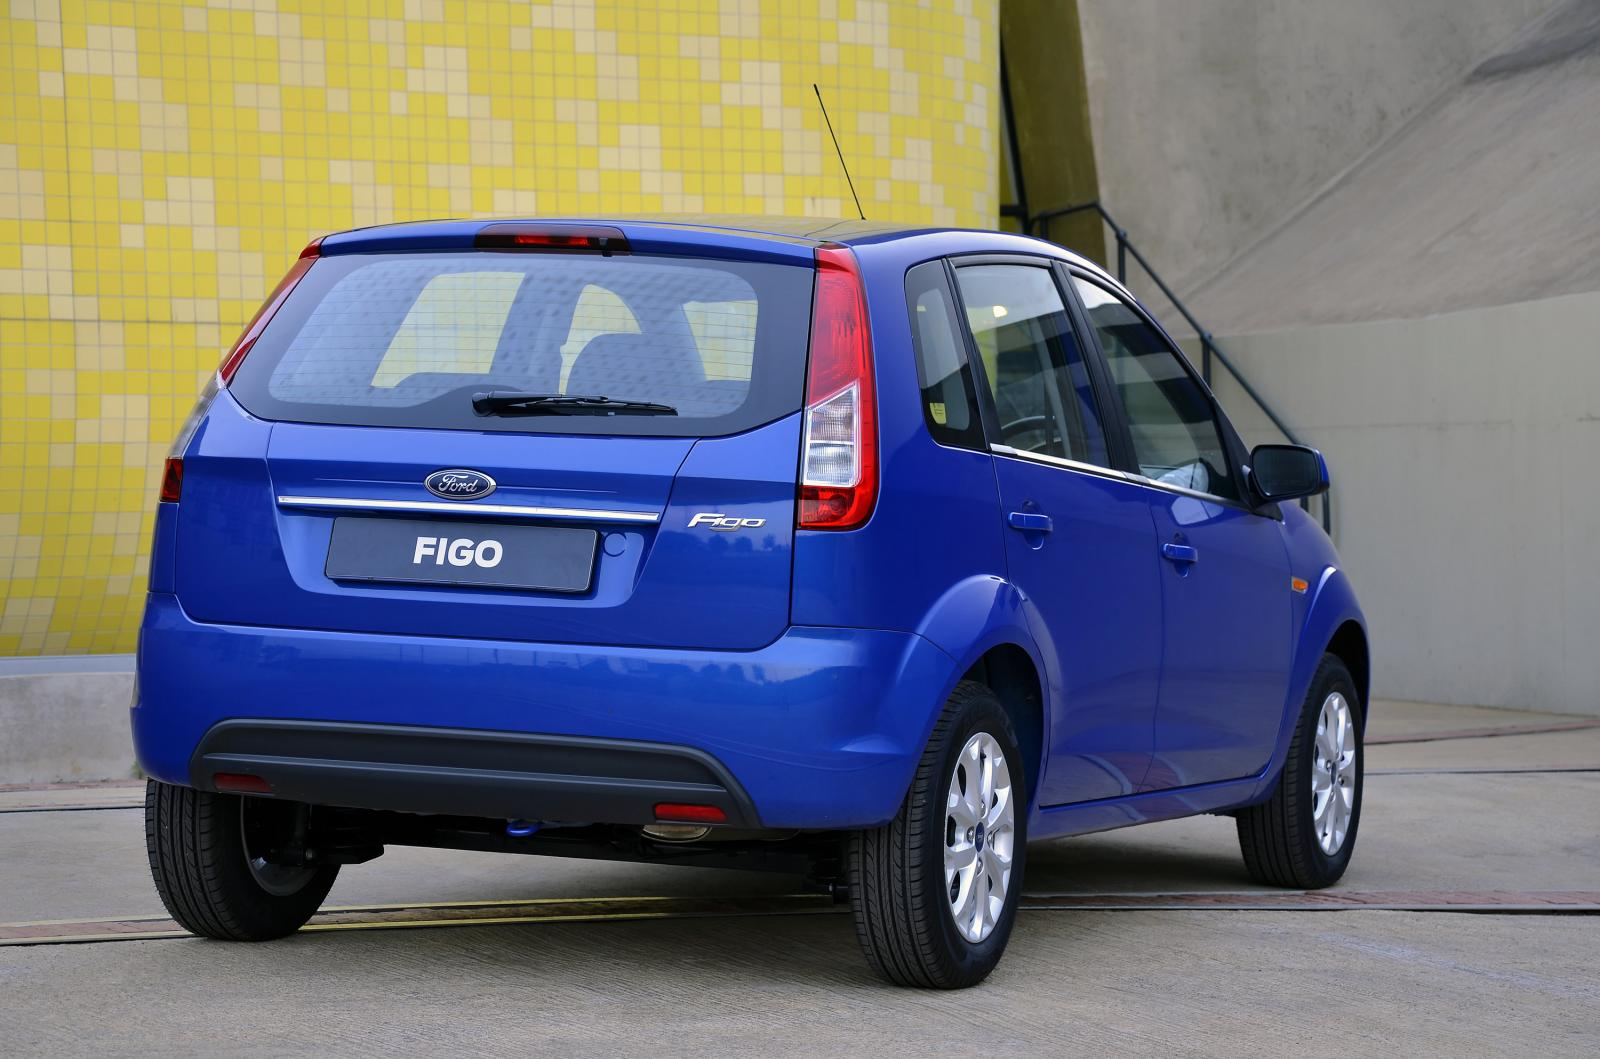 Ford Grand Tourneo Connect >> Ford Figo Gets Updated for 2013 - autoevolution